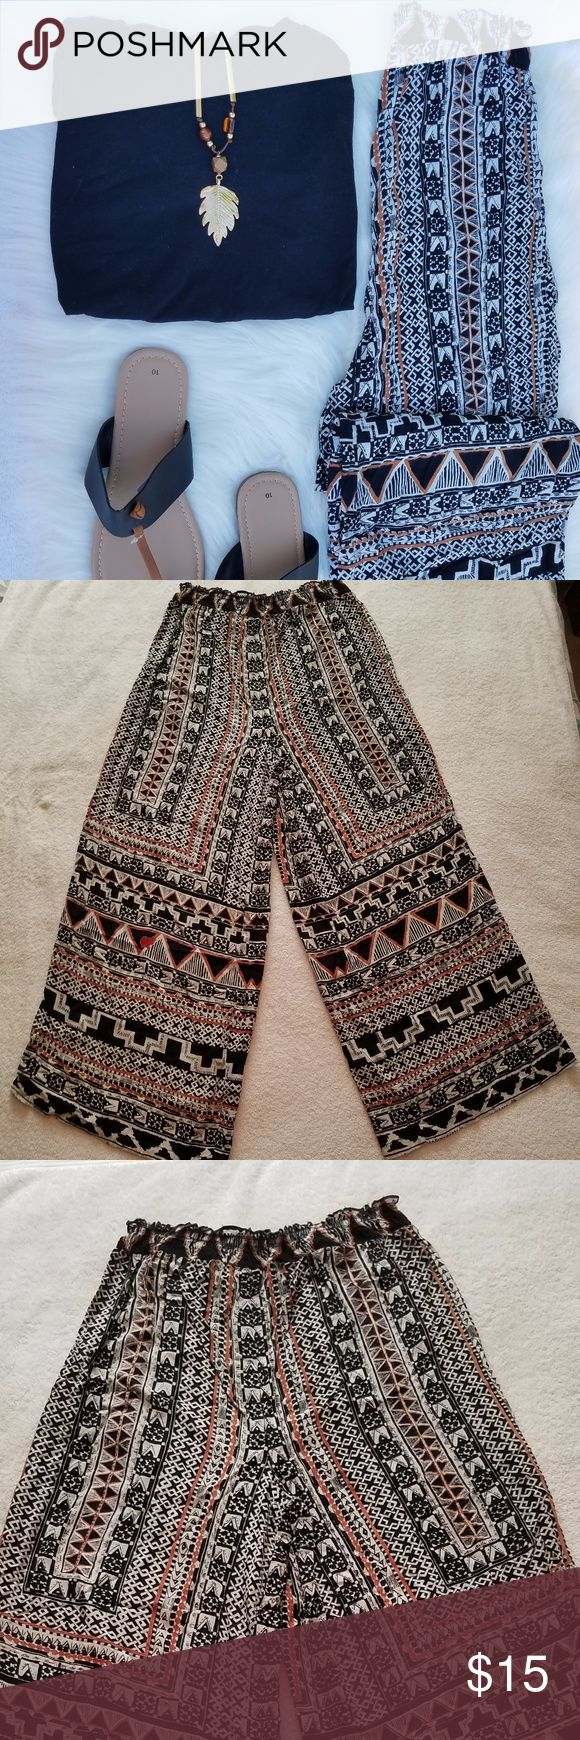 Angie Boho/Tribal Aztec Print Wide-Leg Pants Angie lightweight boho/tribal Aztec print wide-leg pants w/elastic waistband. Pants are black, off-white, & copper. No pockets.   Size: L Material: 100% rayon  Measurements [Approximately]: Waistband to hem: 39.25 inches Waistband width: 13 inches, loose & 21 inches, stretched Hip width: 21.25 inches Inseam: 26.5 inches Hem opening: 13.5 inches  *Selling ONLY pants* Angie Pants Wide Leg